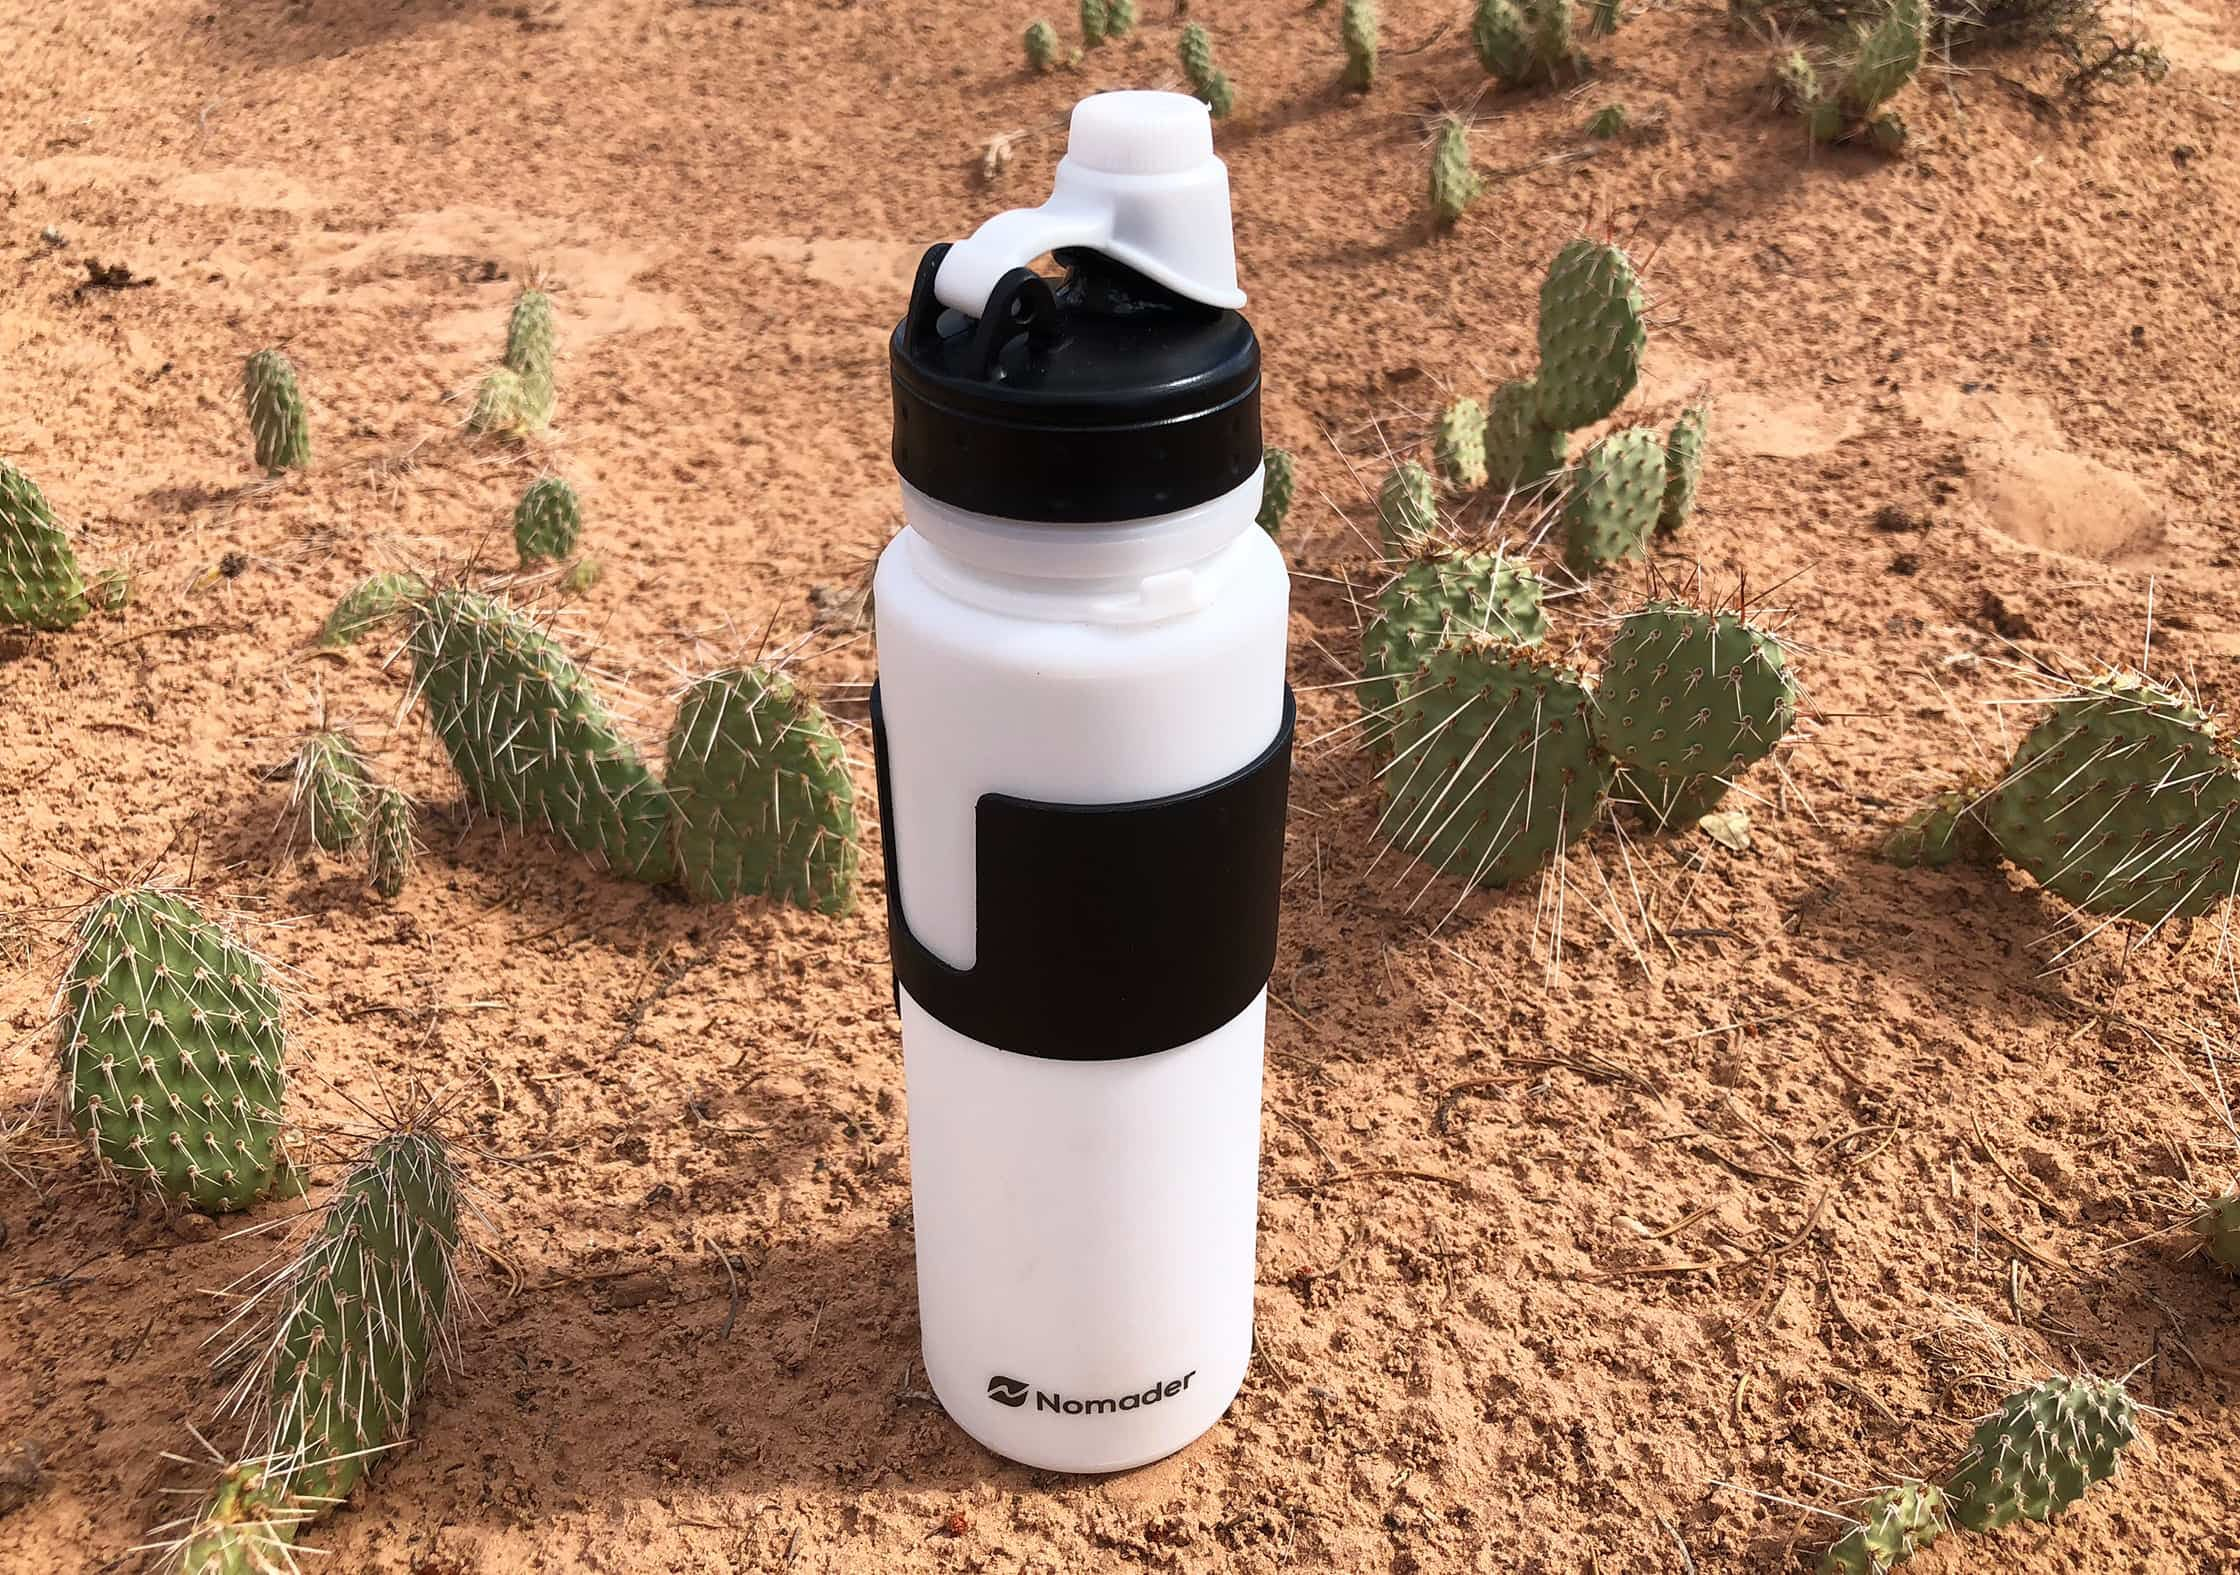 Nomader Collapsible Water Bottle In The Desert